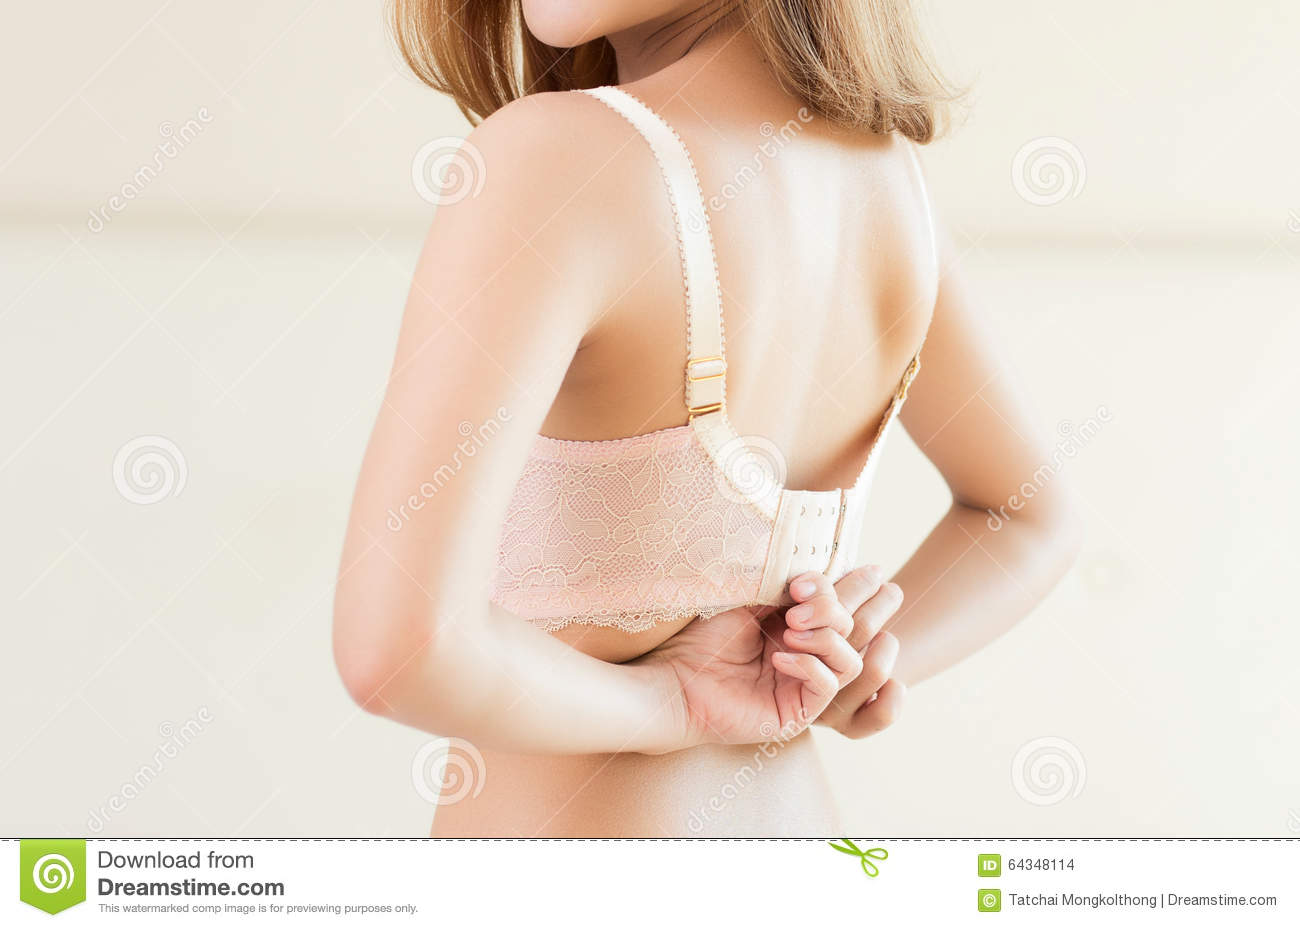 Young Beautiful Model Taking Off Her Bra Stock Photo - Image 64348114-6880